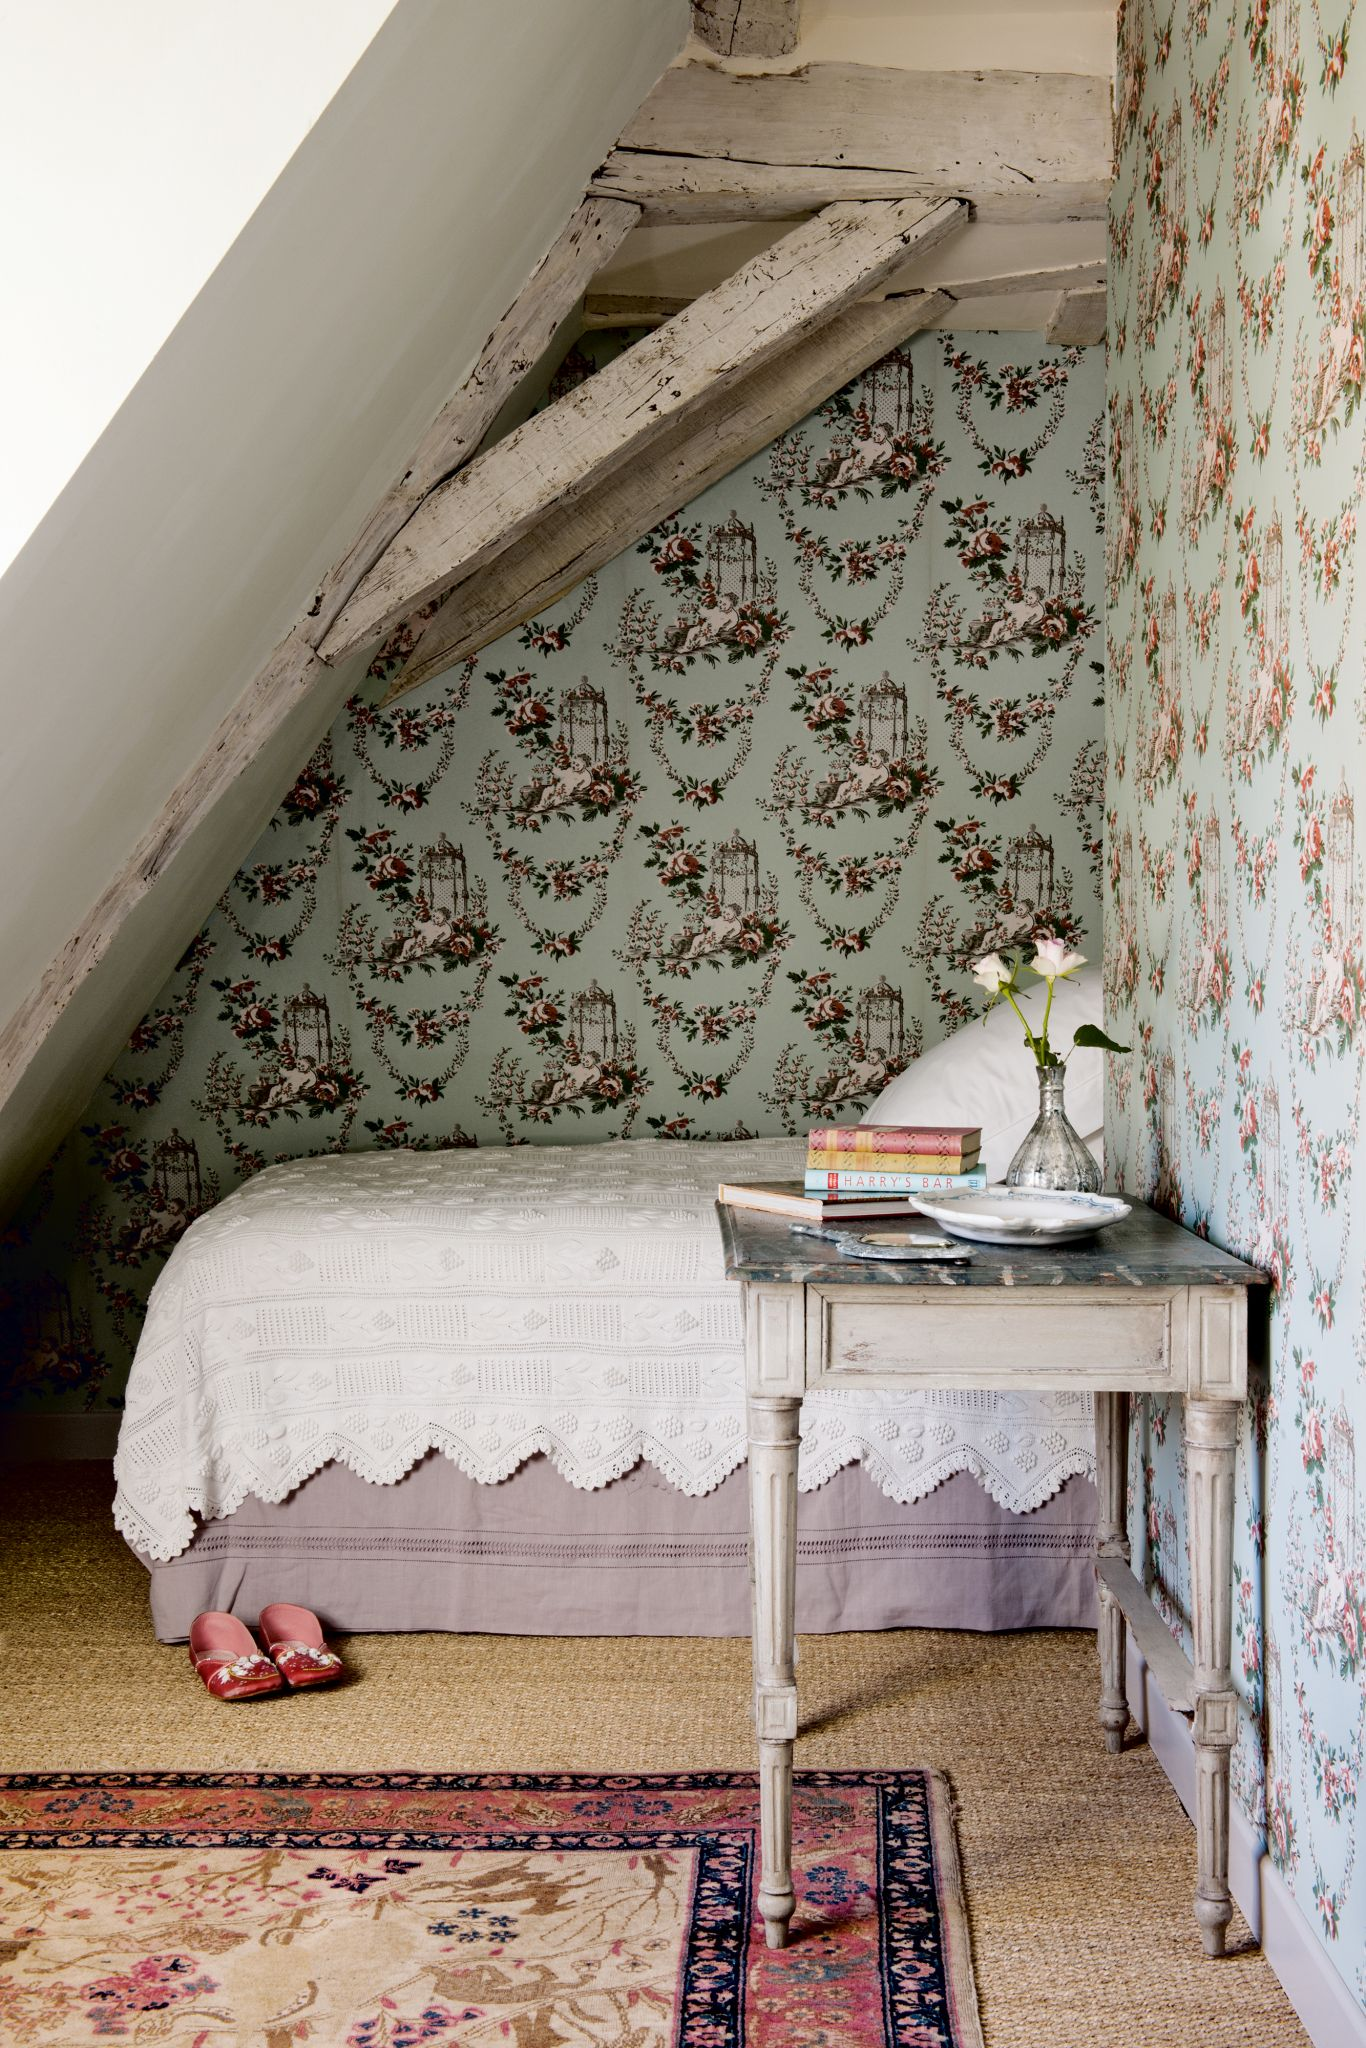 La camera da letto in stile francese | Shabby Chic Mania by ...